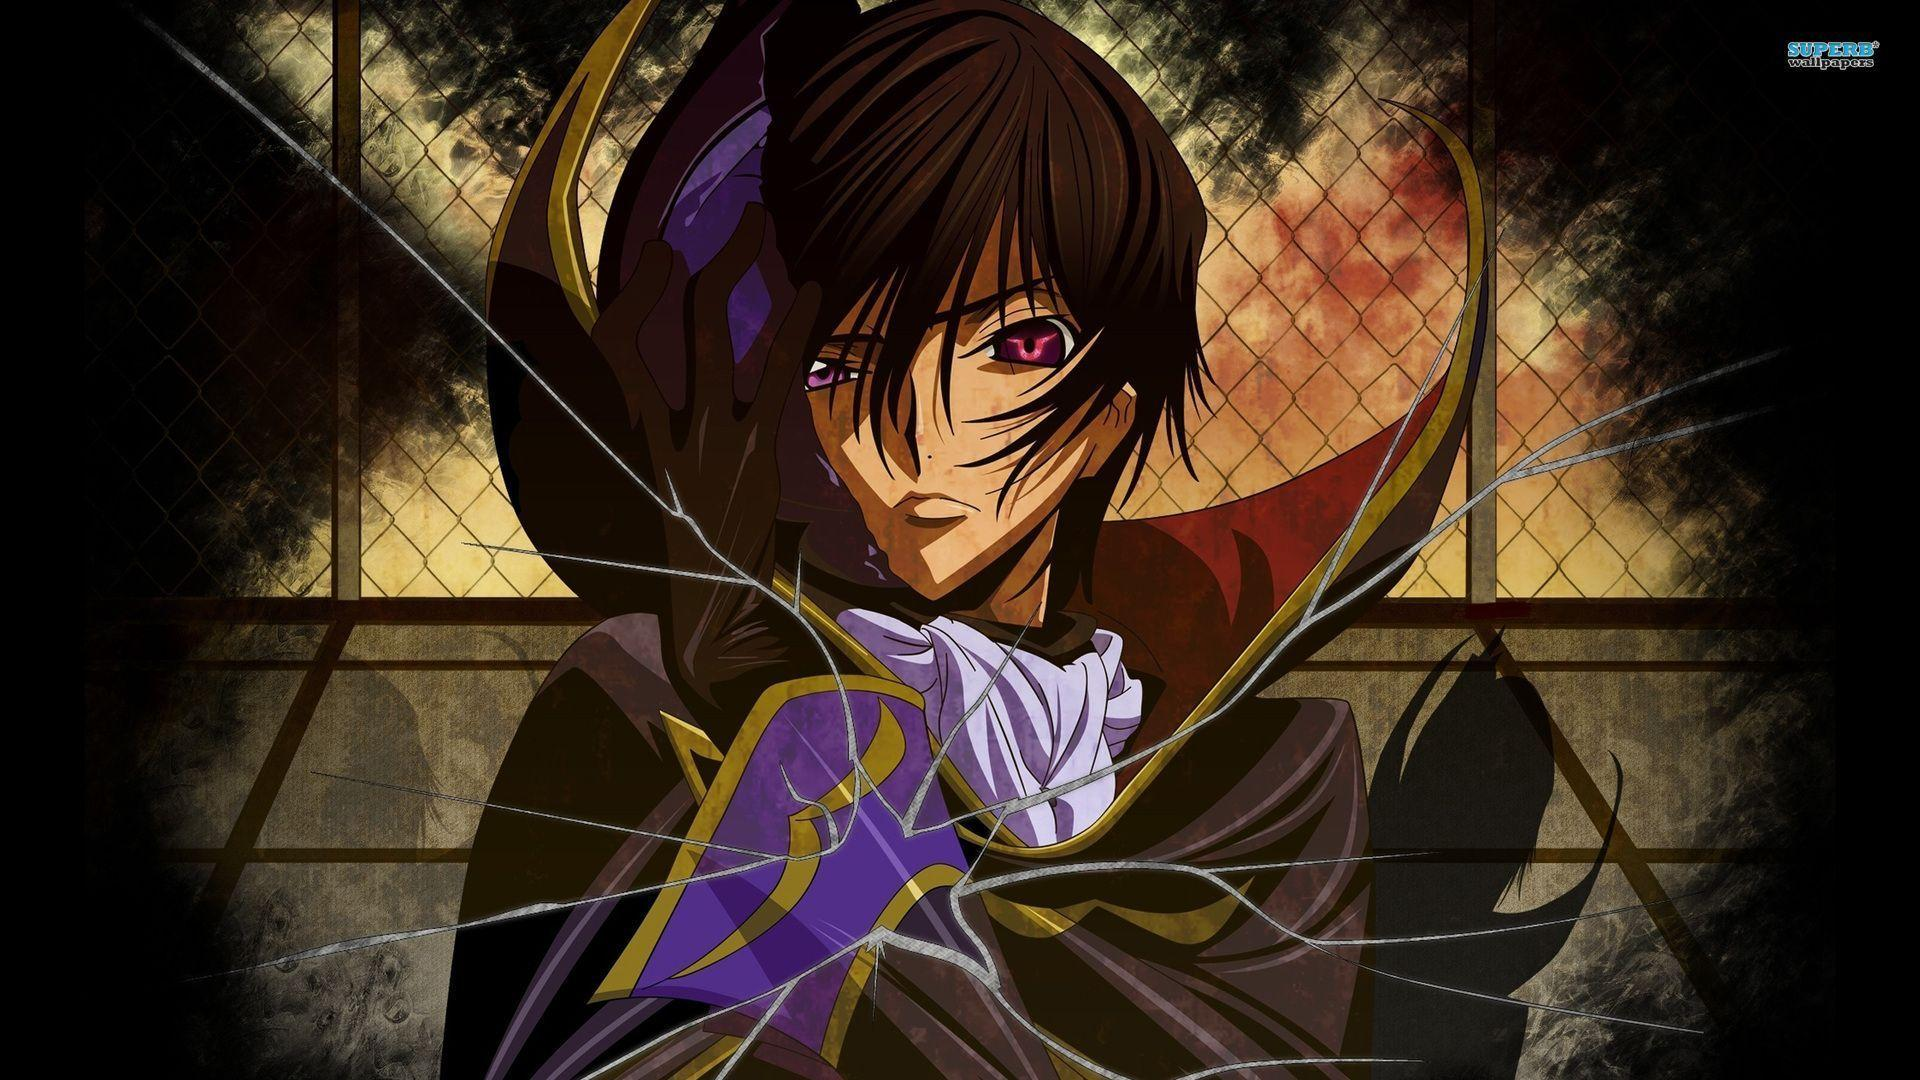 wallpaper lelouch - photo #3